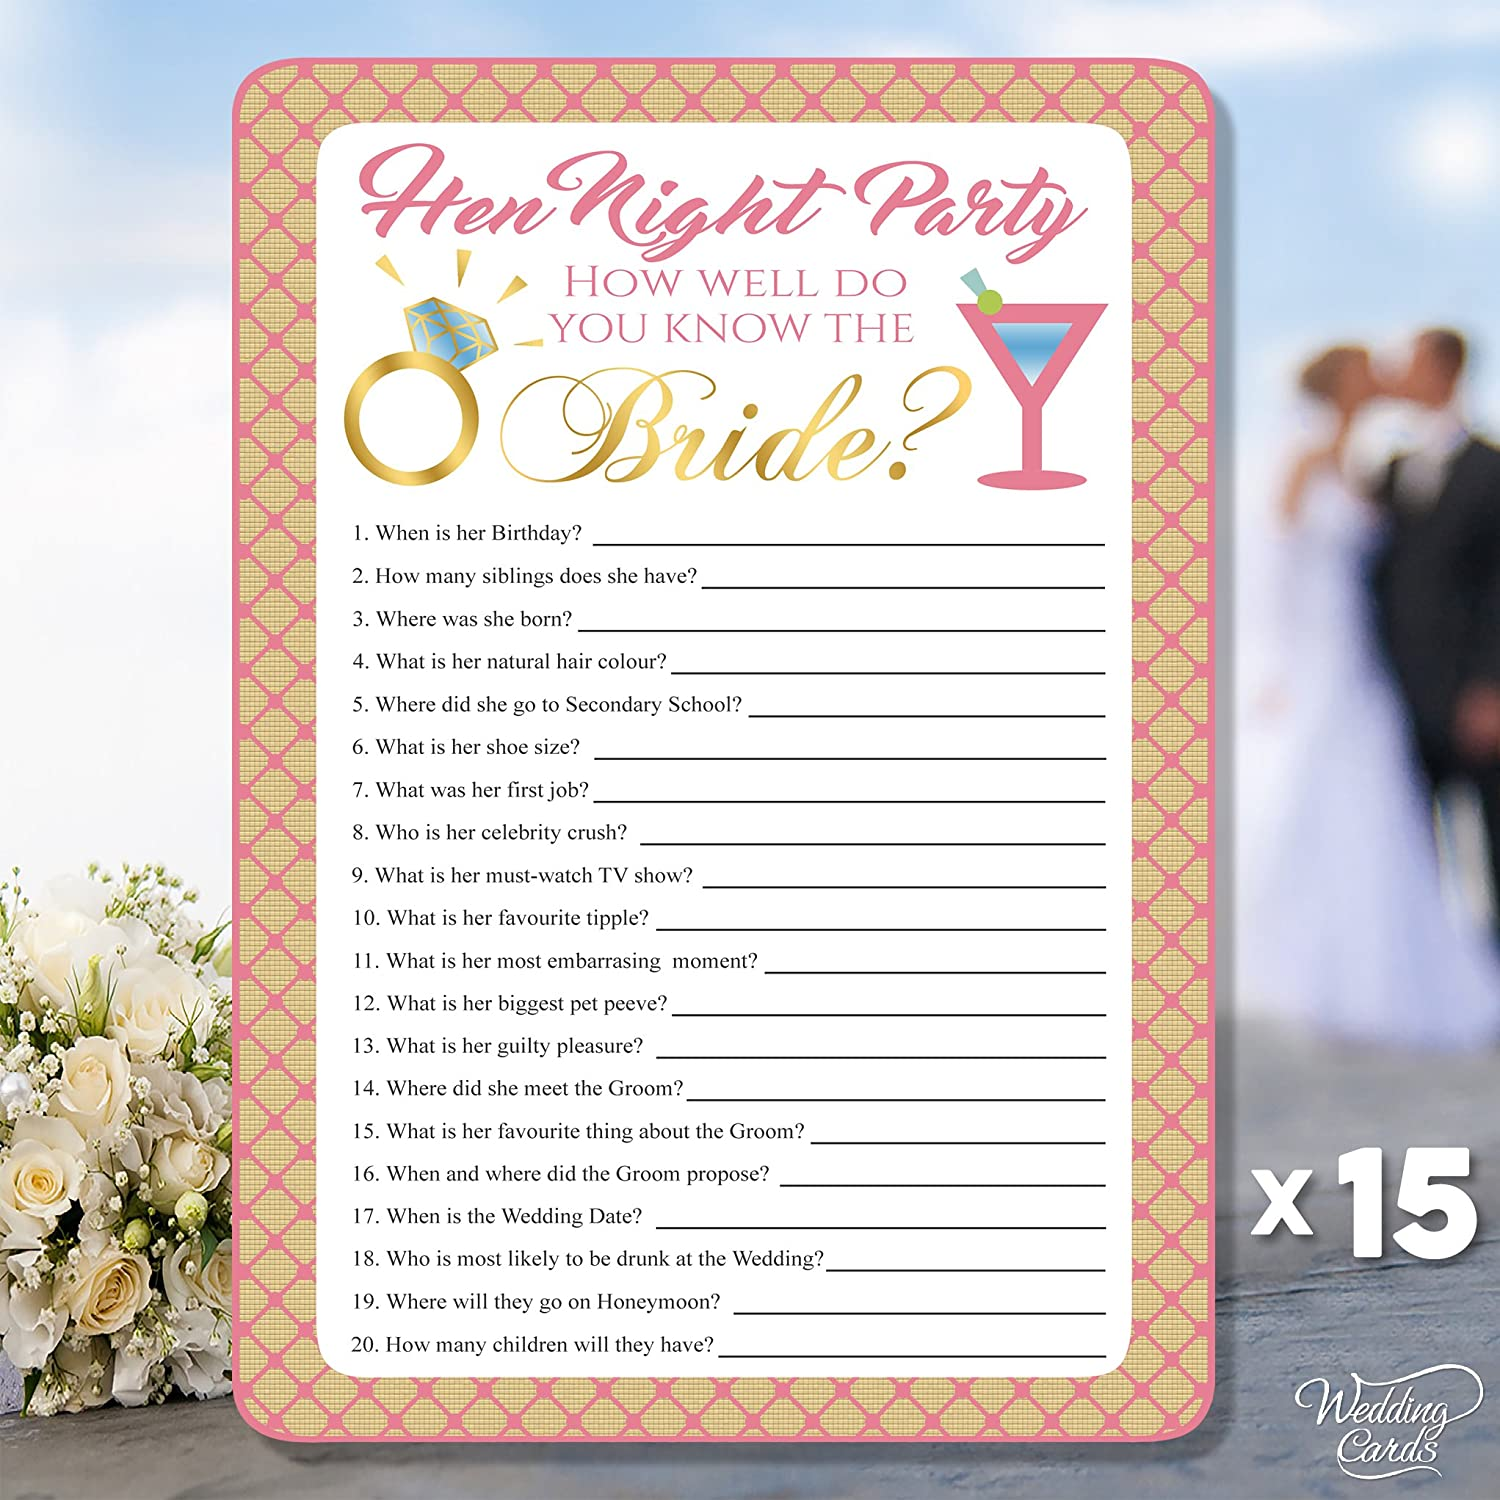 15 x Quiz Sheets How Well Do You Know The Bride Hen Night Party Game Team Bride